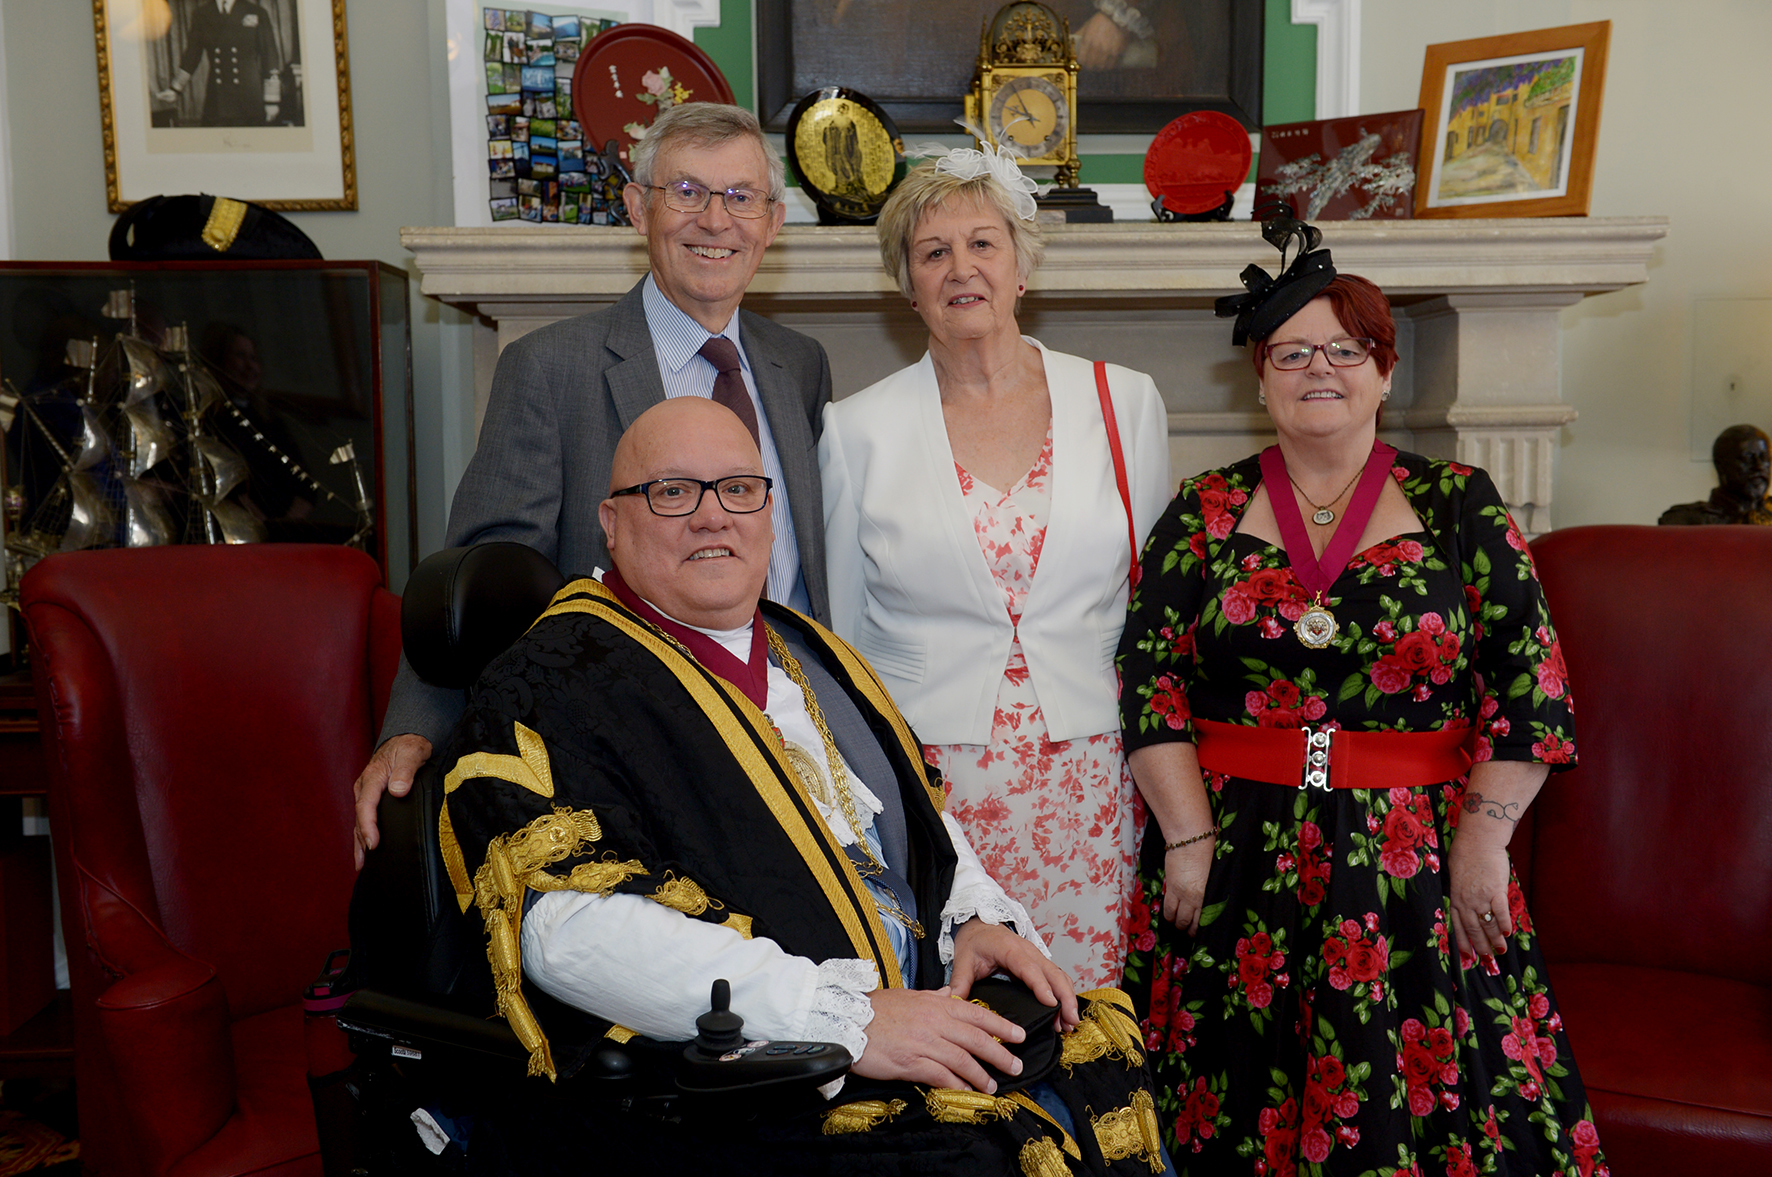 Handover - the outgoing Colchester mayor Gerard Oxford, with the current deputy mayor Peter Chillingworth and deputy mayoress Ann Chillingworth, with mayoress Beverly Oxford.